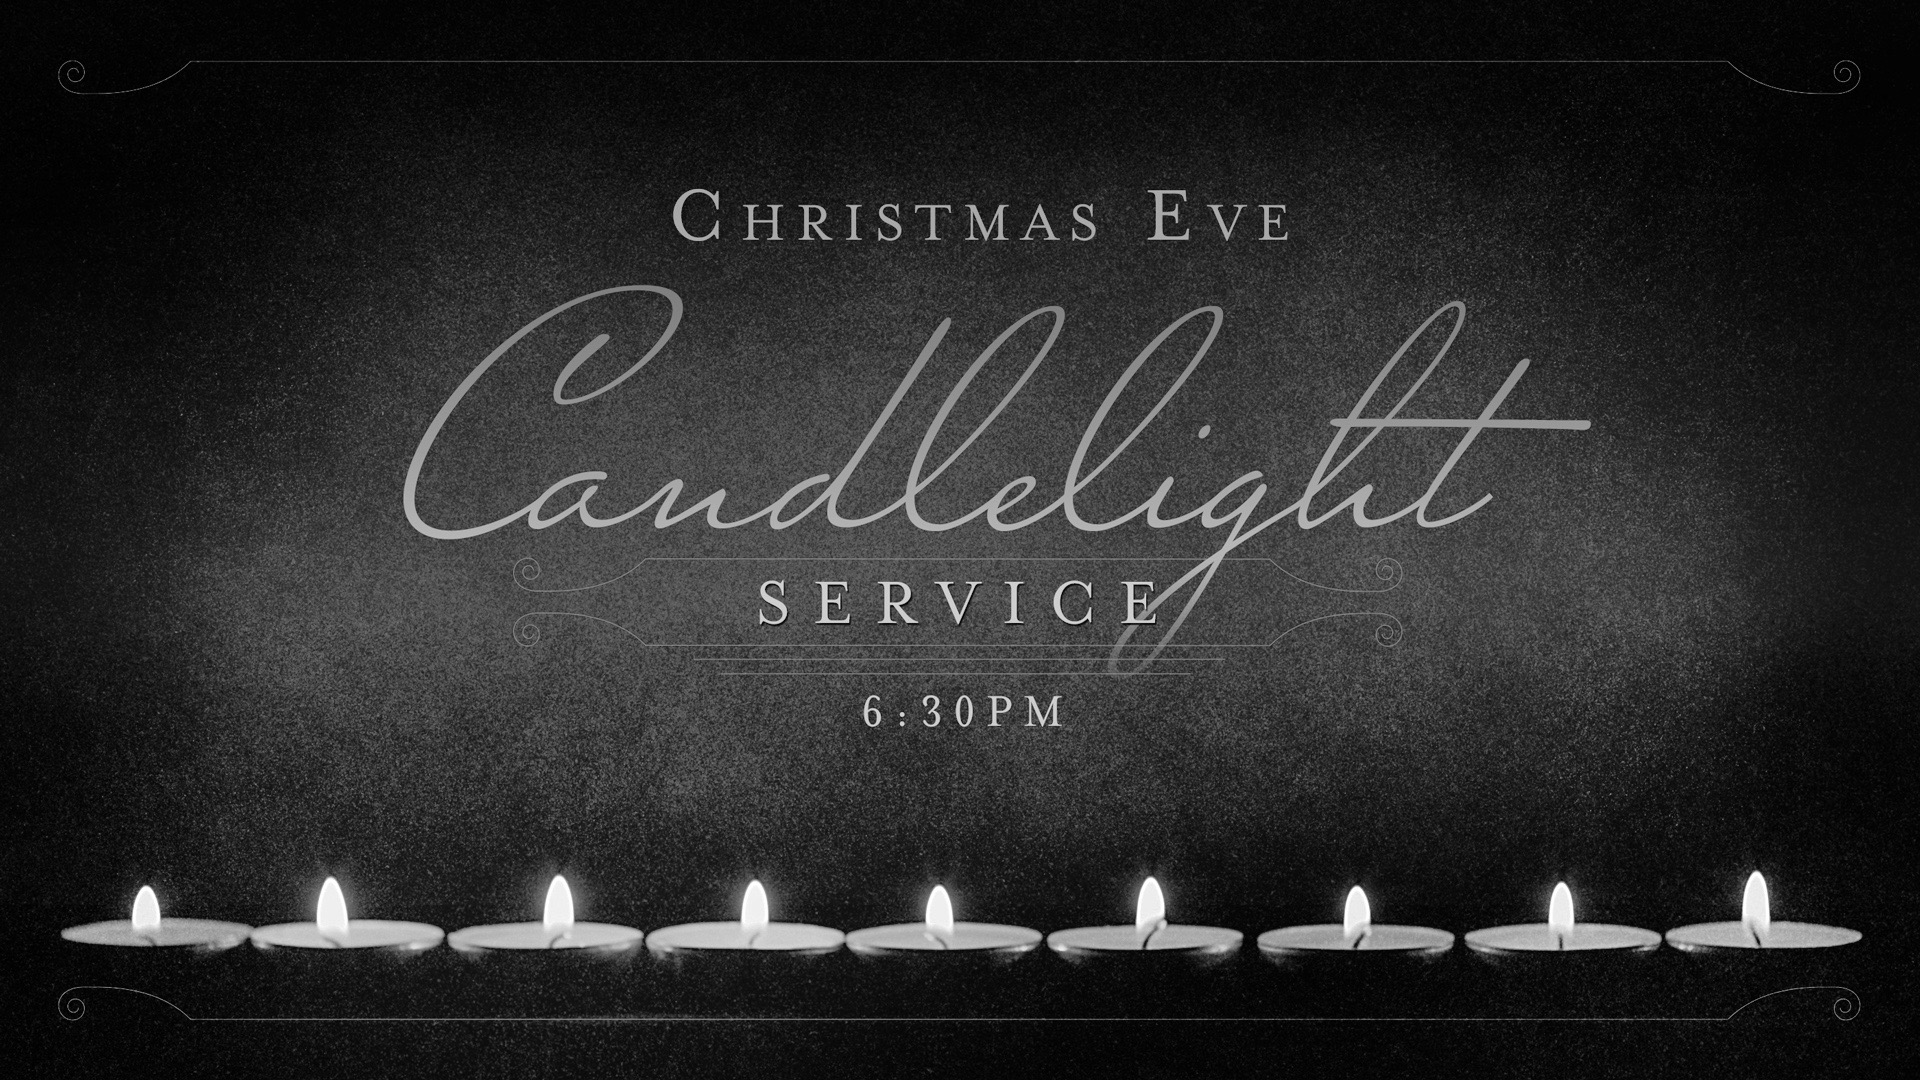 Christmas Eve Candlelight Service 6-30pm.001 image